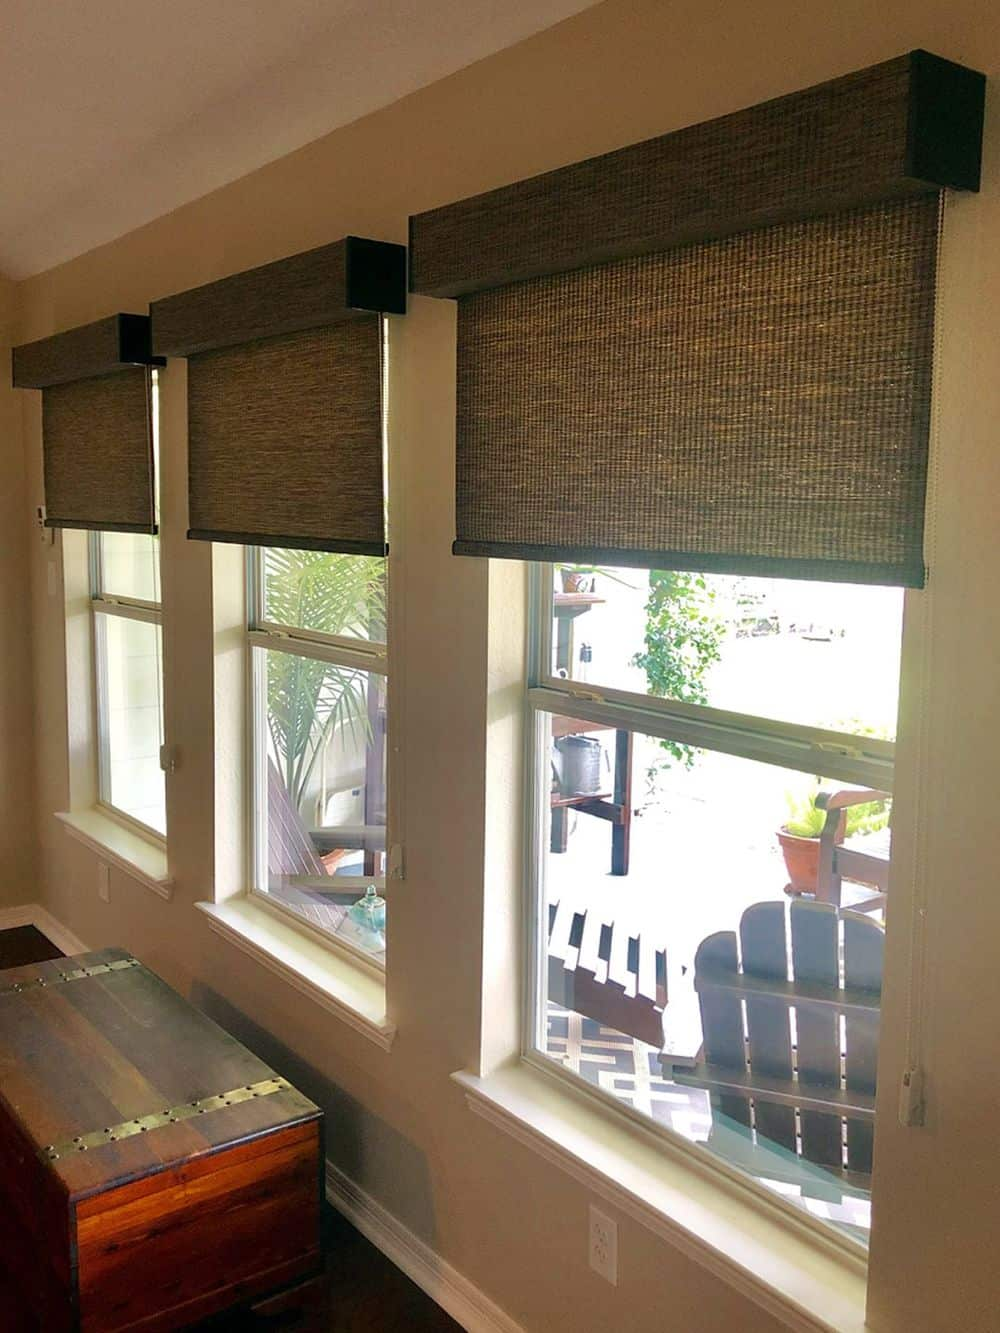 This house boasts glass windows with stylish window shades. It also has hardwood floors and beige walls.